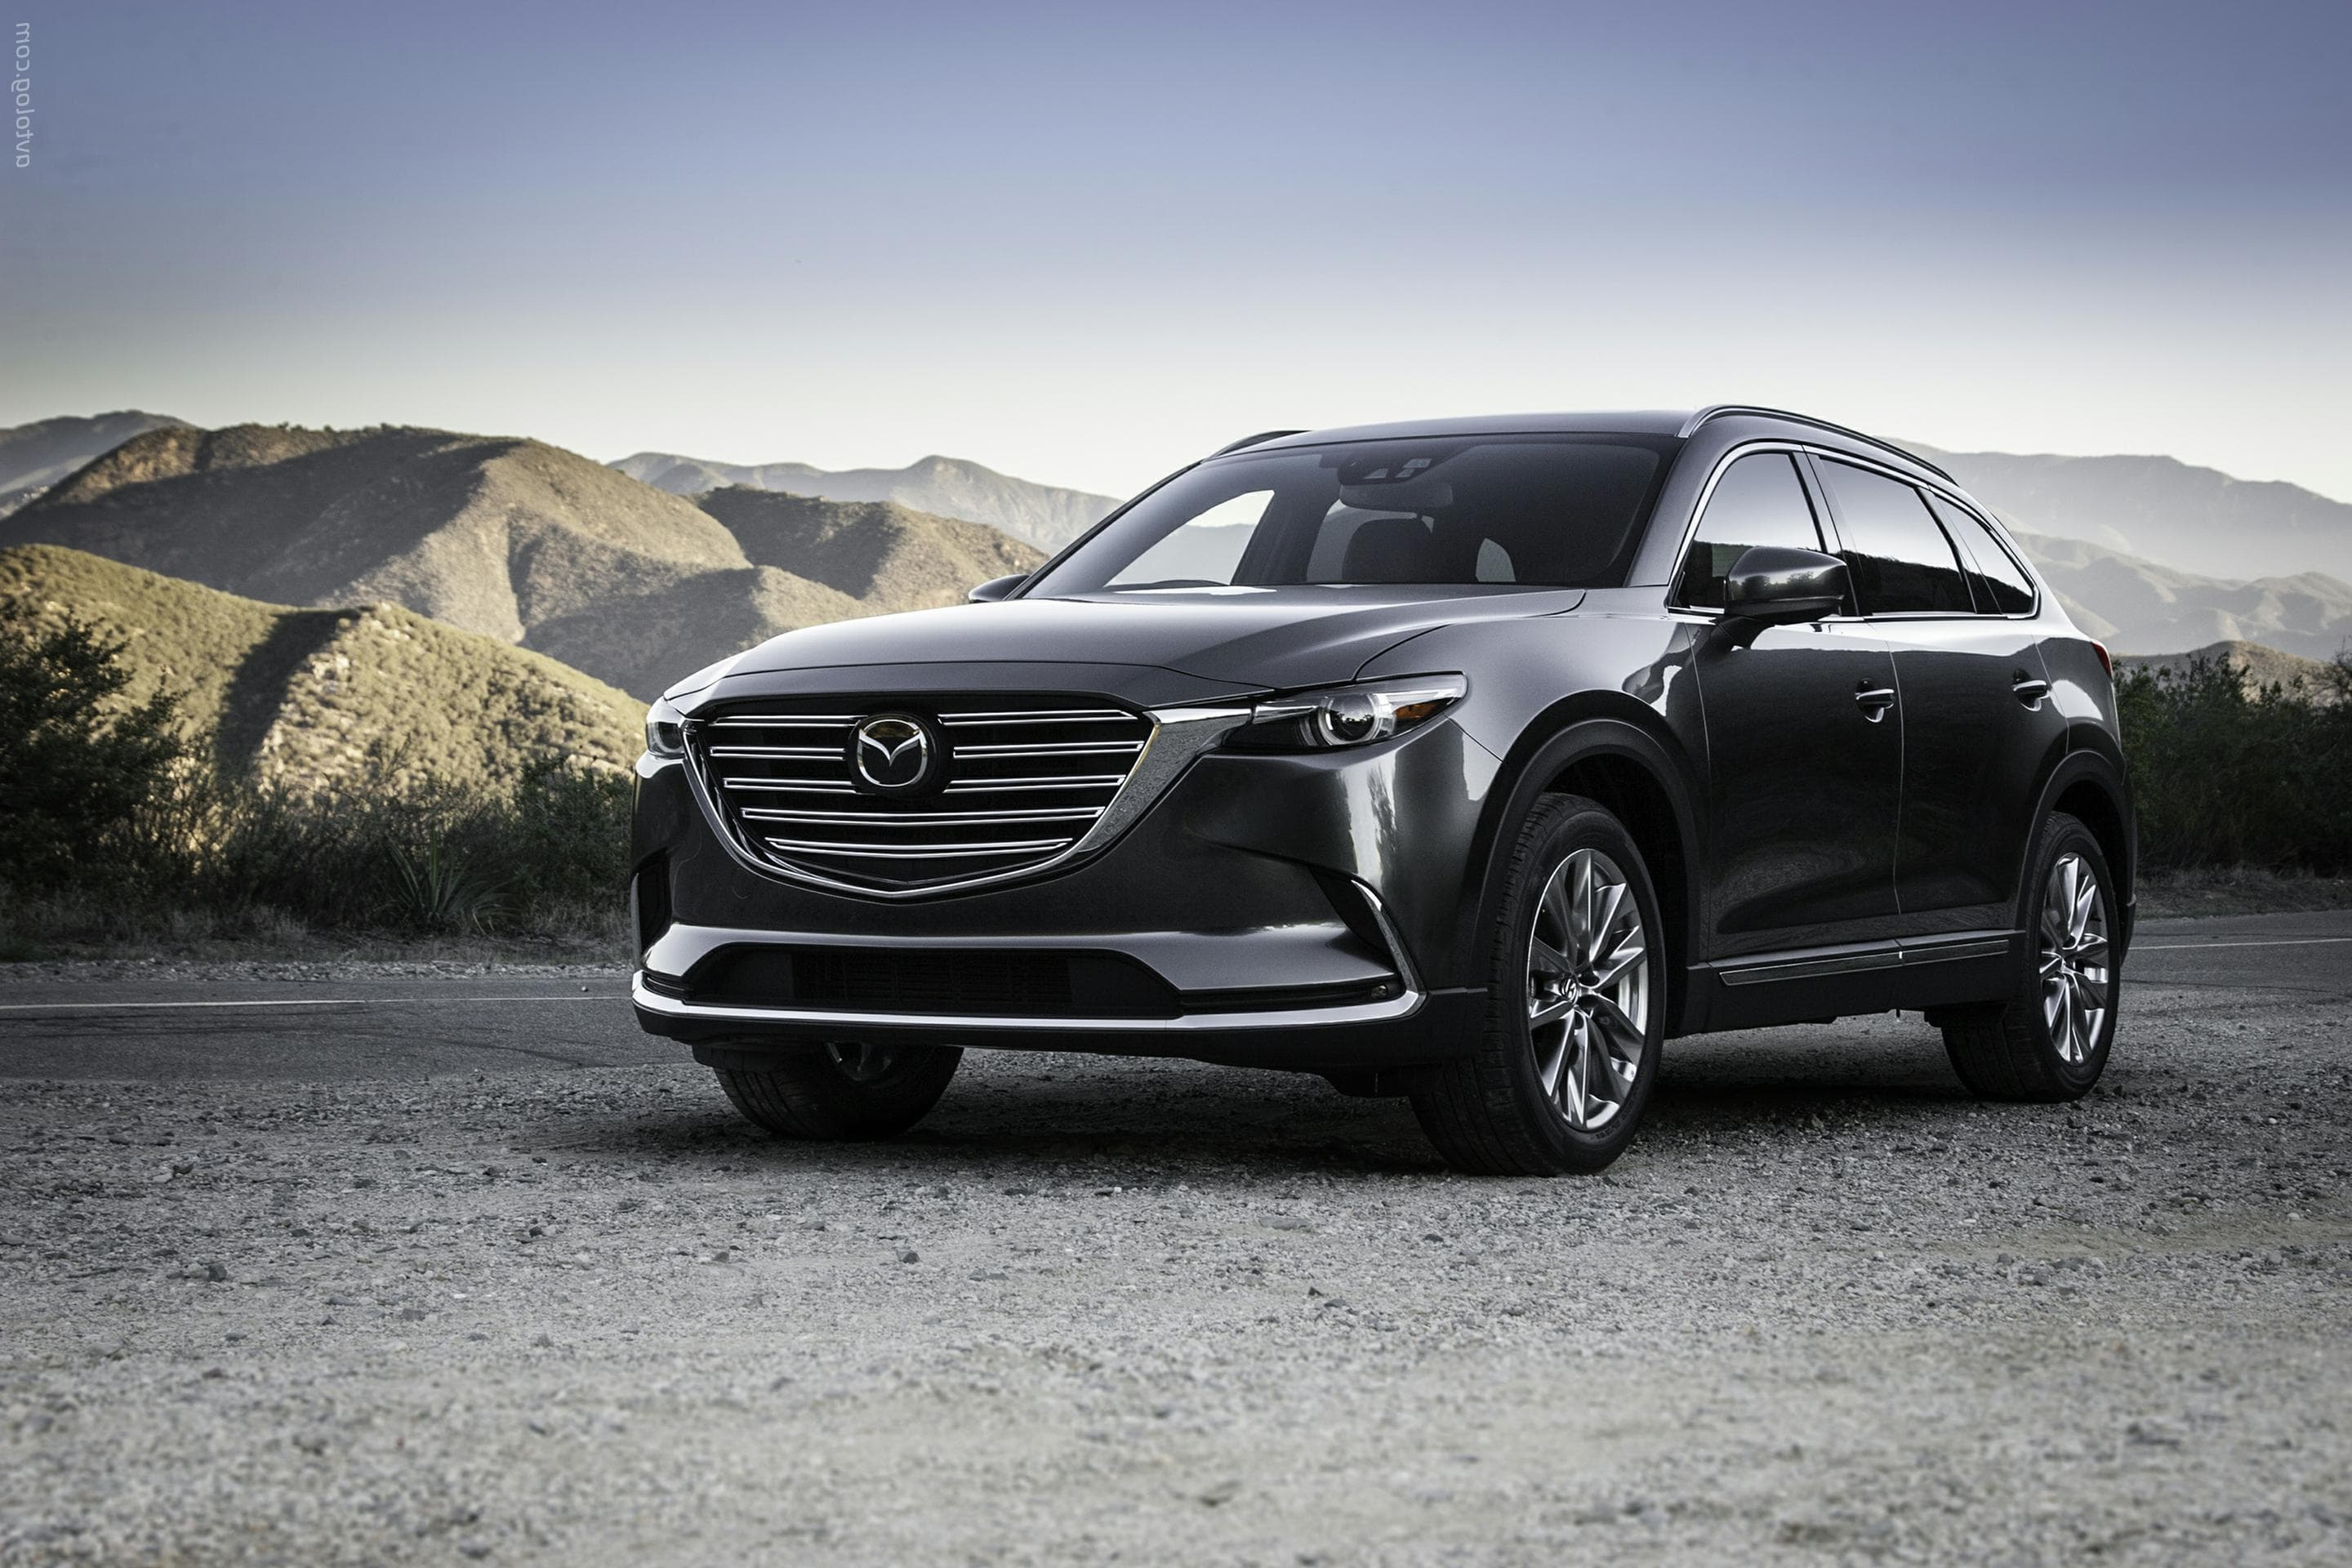 2016 mazda cx 9 wallpapers hd high quality resolution download. Black Bedroom Furniture Sets. Home Design Ideas